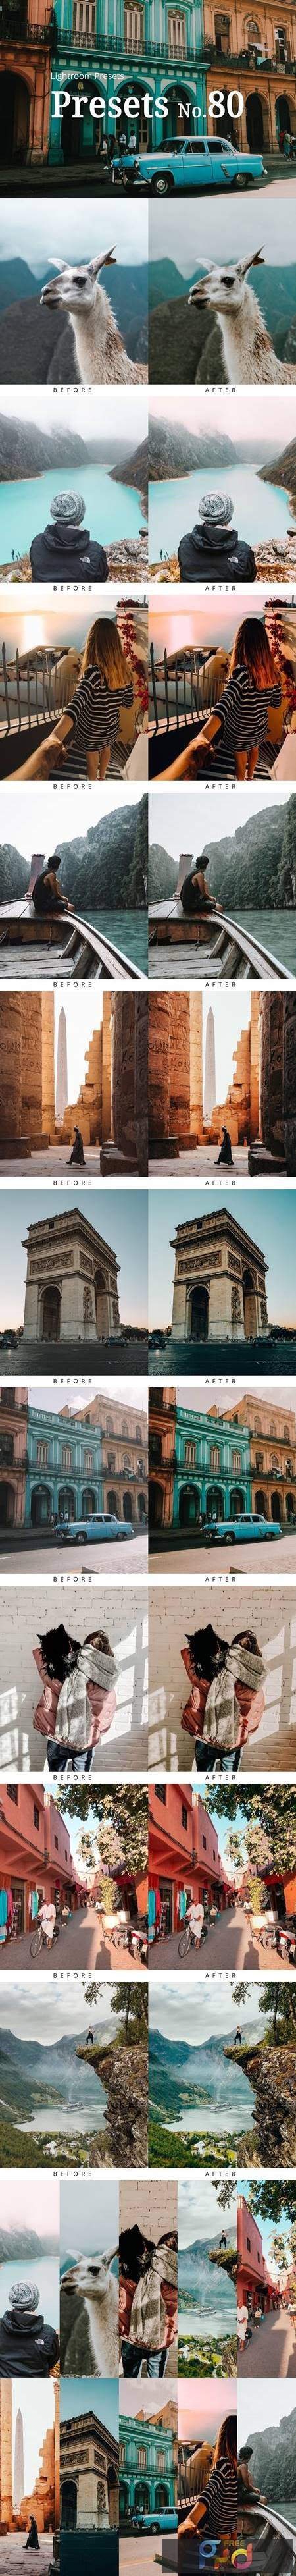 10 VSCO Travel Lightroom Presets 5362552 1